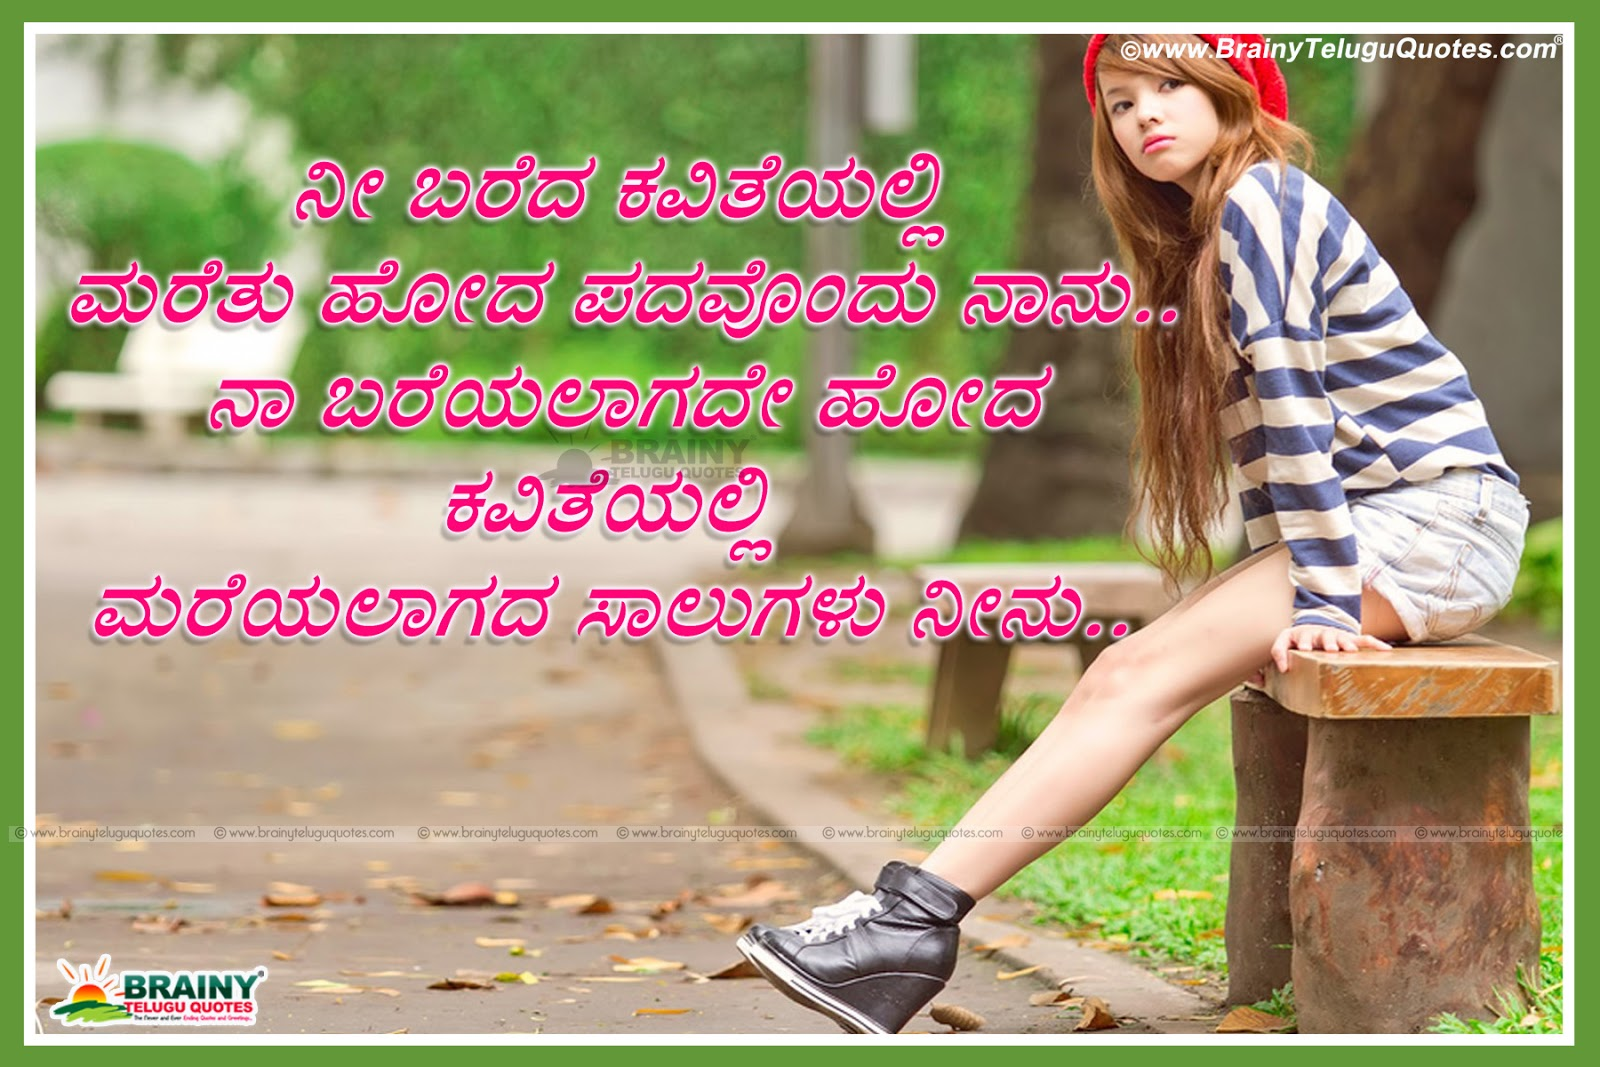 download tamil sad feeling kavithaigal images with quotes sad love quotes sayings love failure